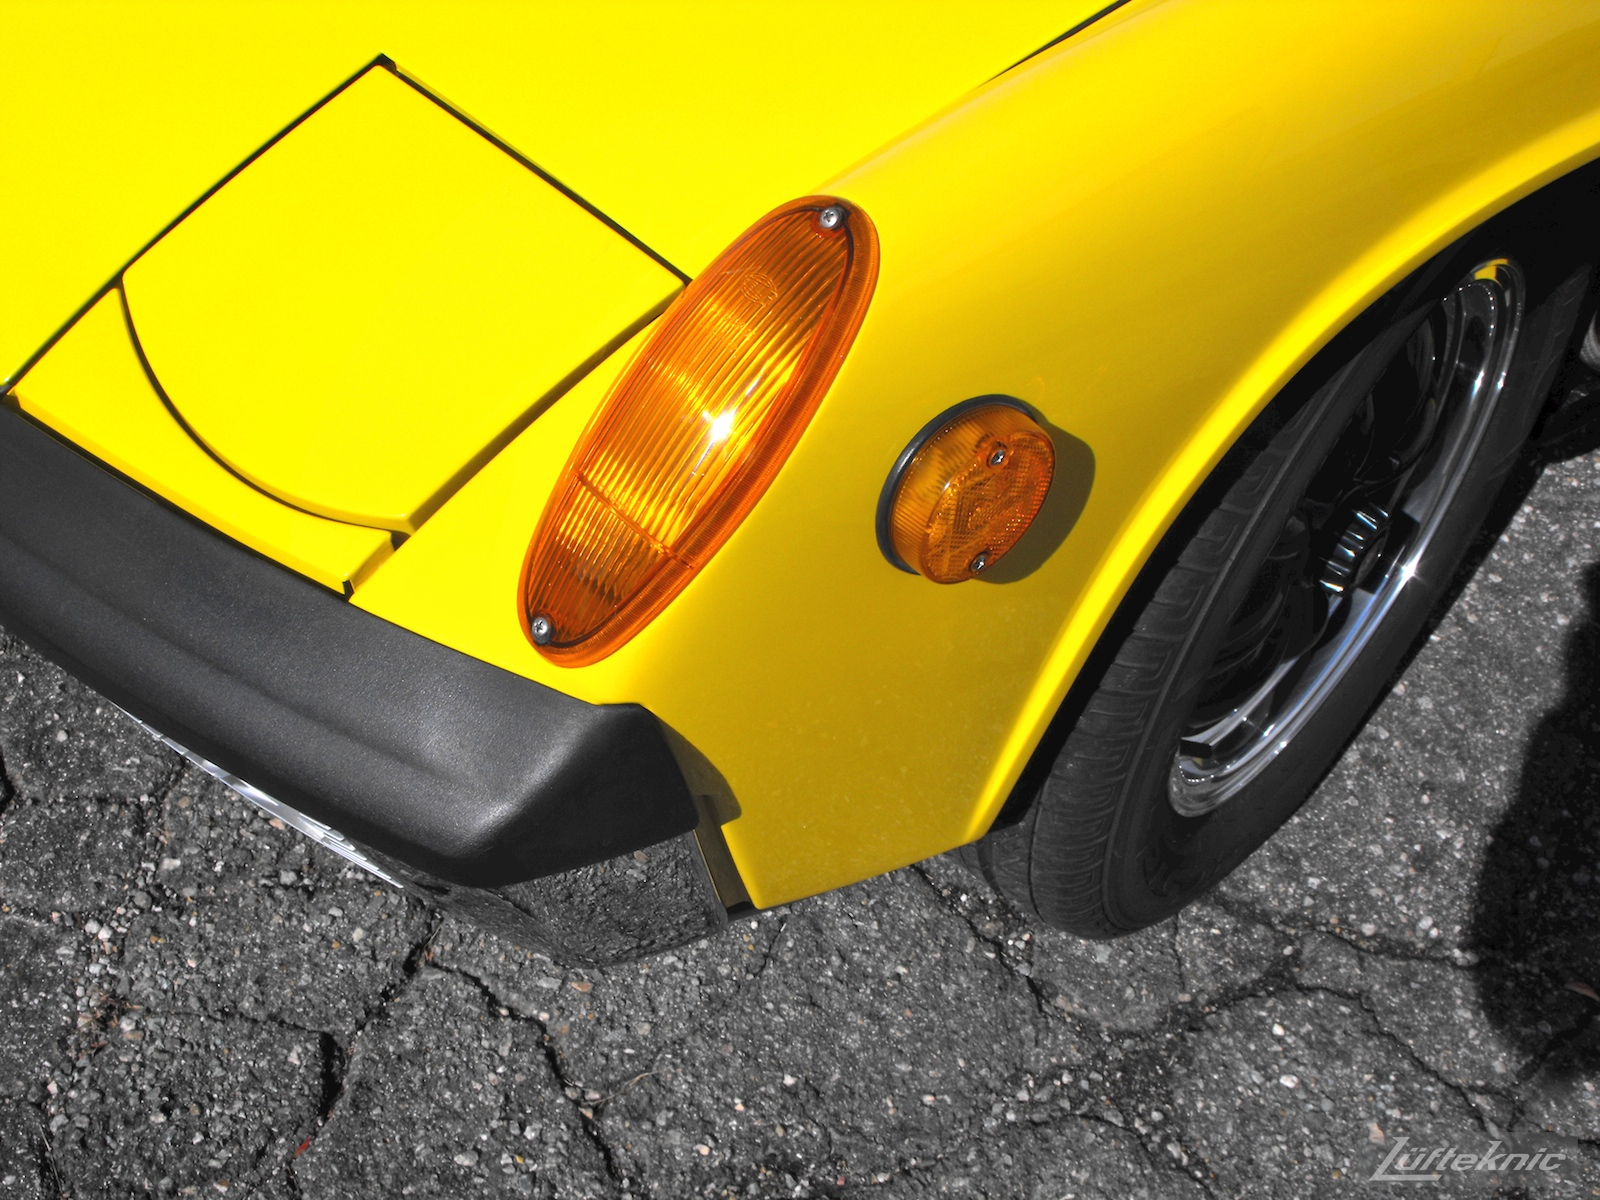 A completely restored yellow Porsche 914 posing in the parking lot of Lufteknic.